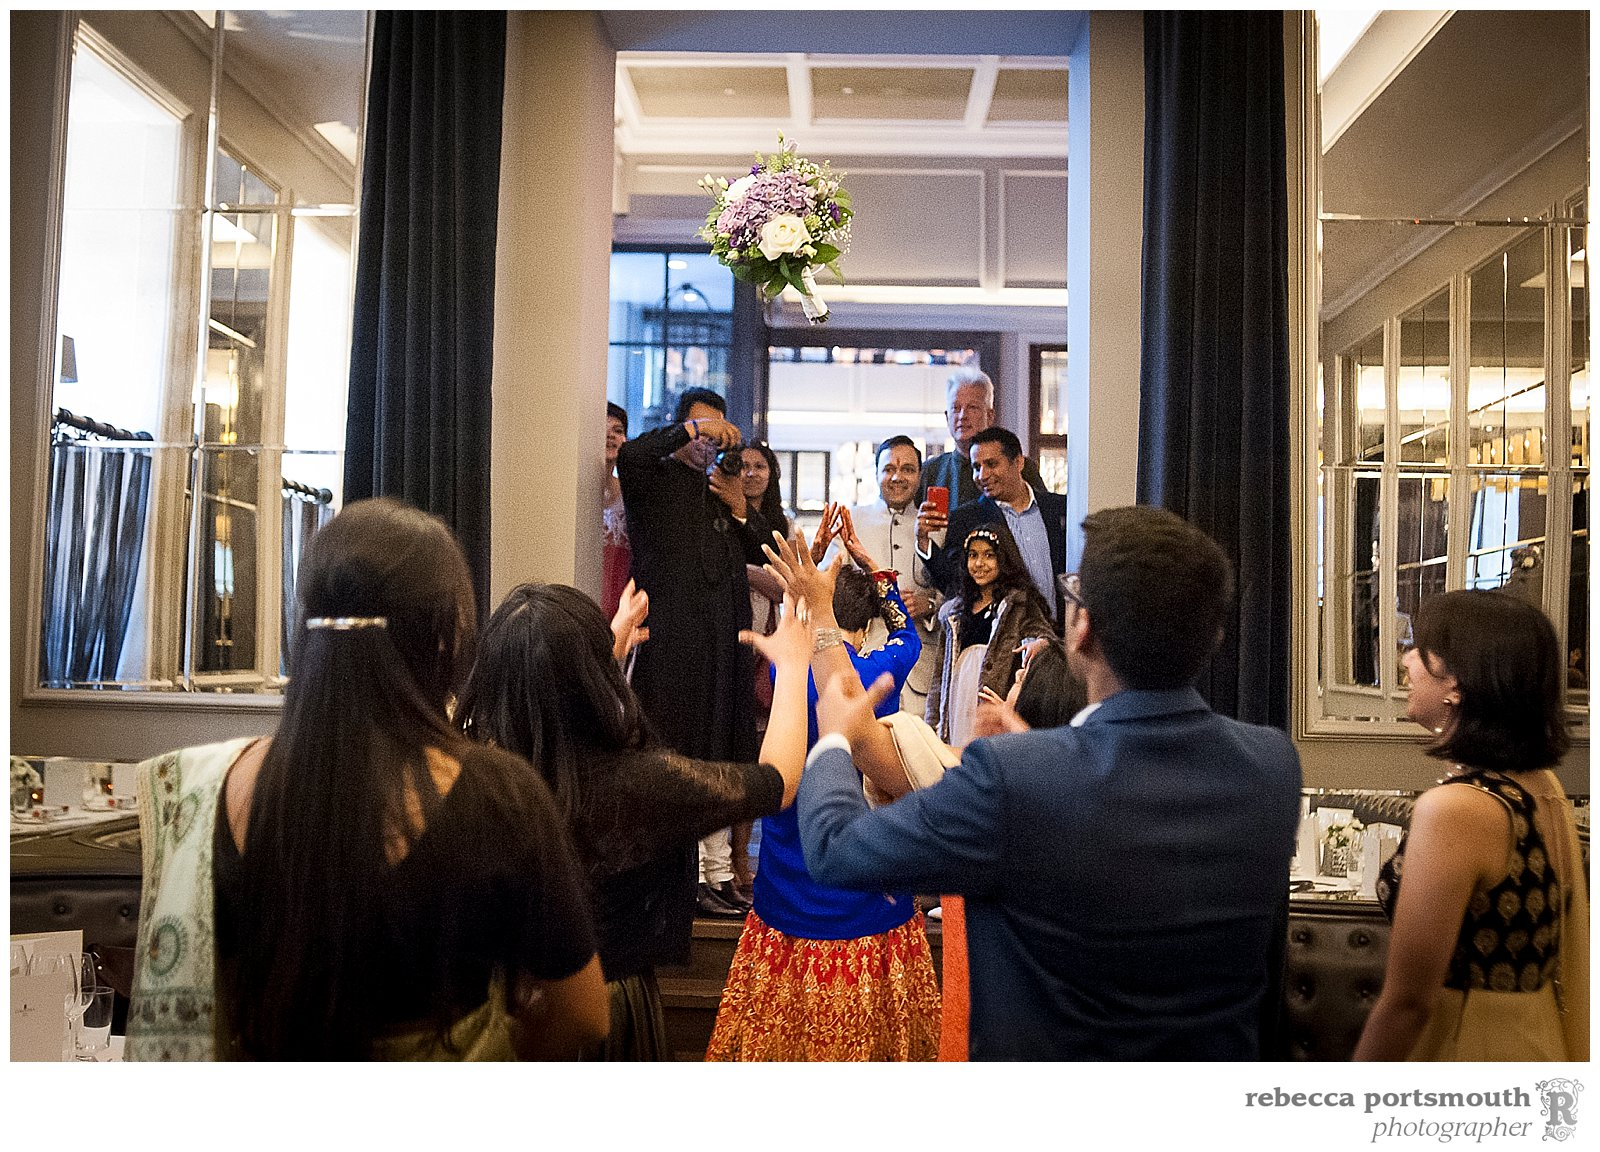 Pooja throws her bouquet at her wedding reception at the Corinthia Hotel, Whitehall Place, London.